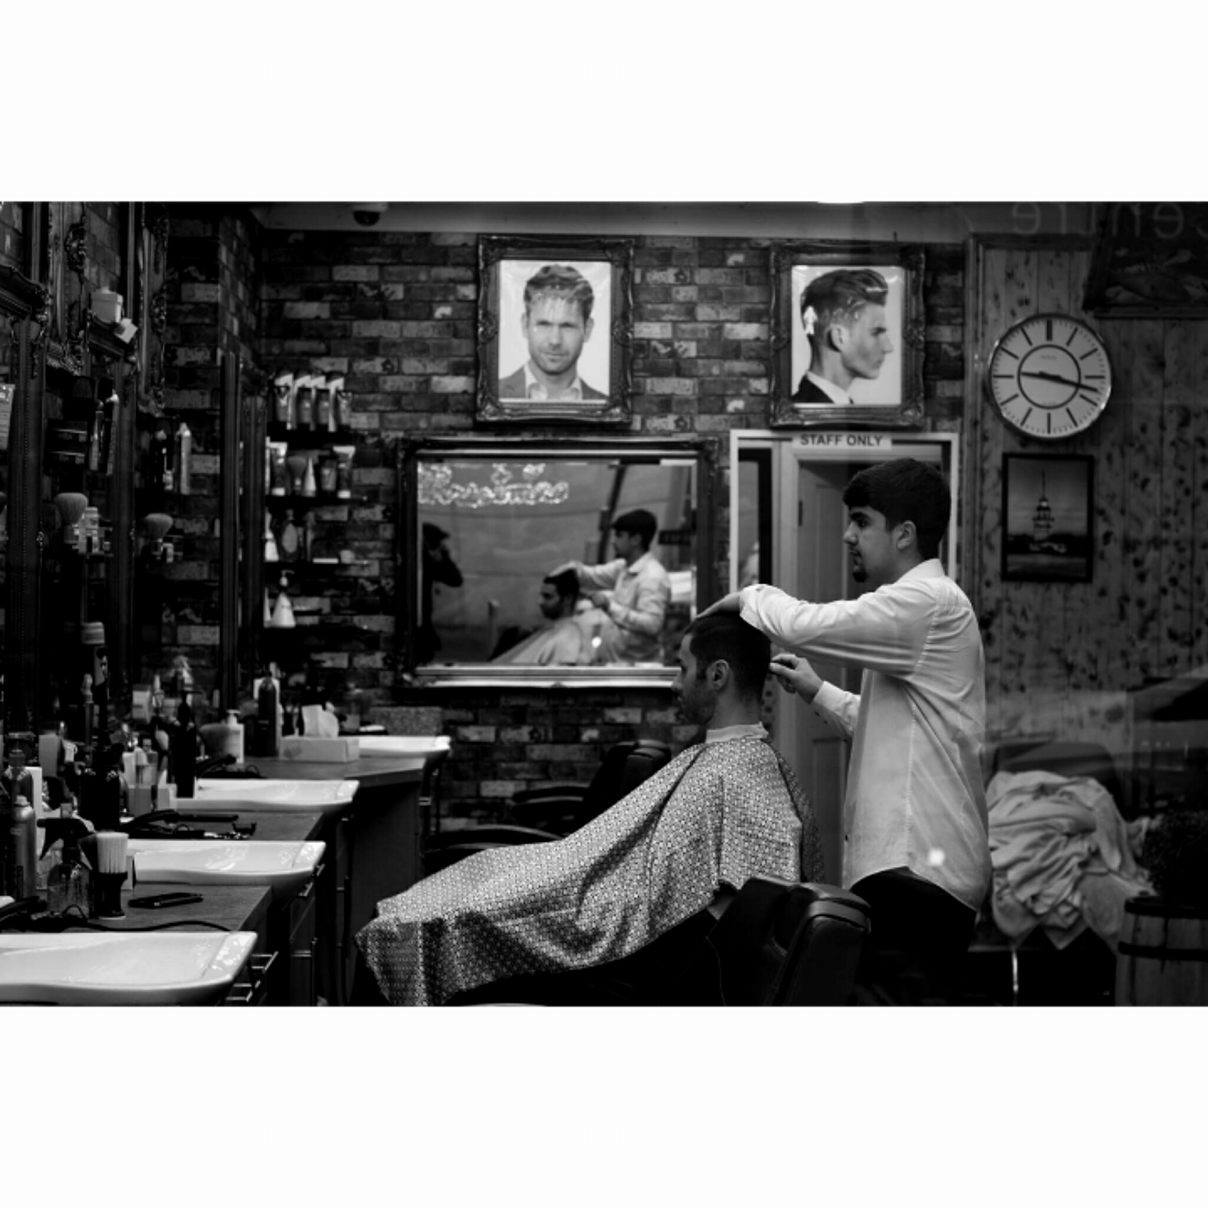 Barber shop in North London, London - January 2017